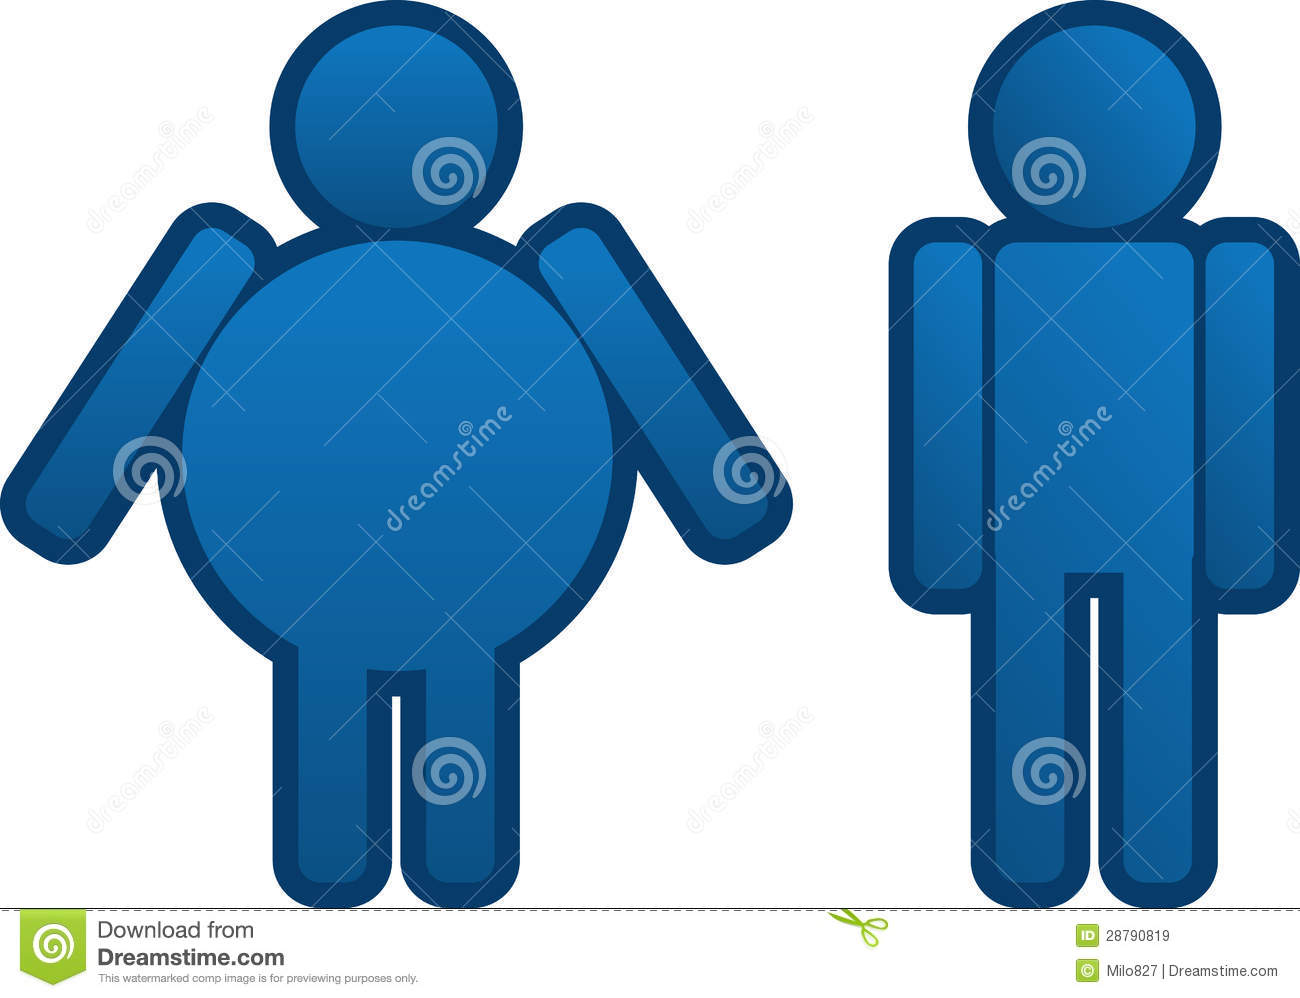 Thin man clipart clipart transparent stock Fat To Thin Man Royalty Free Stock Images - Image: 28790819 clipart transparent stock